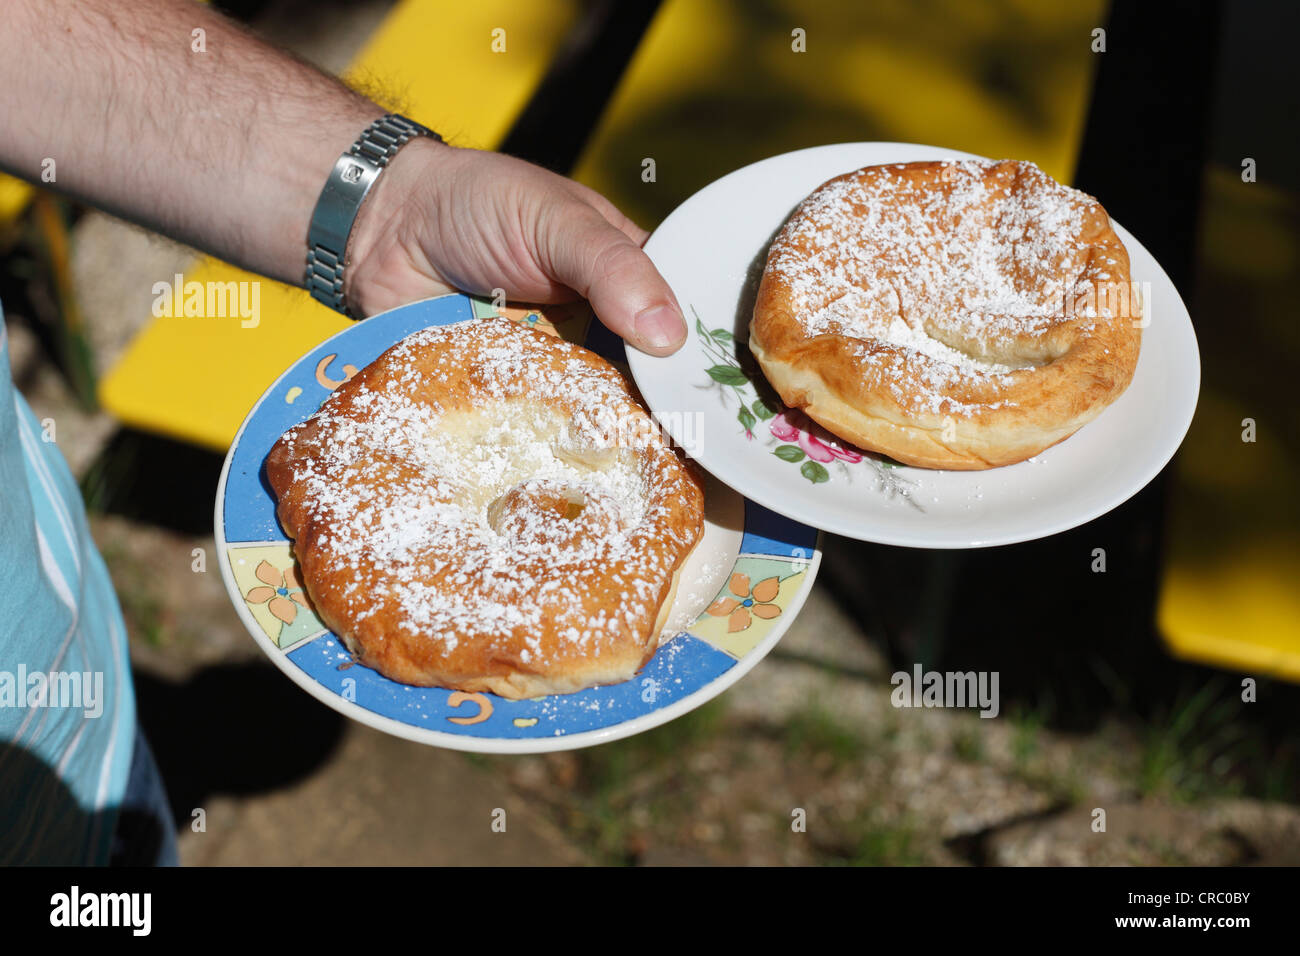 'Auszogne', traditional South German fried doug food in ring-shape with a skin in the middle, Franconian - Stock Image